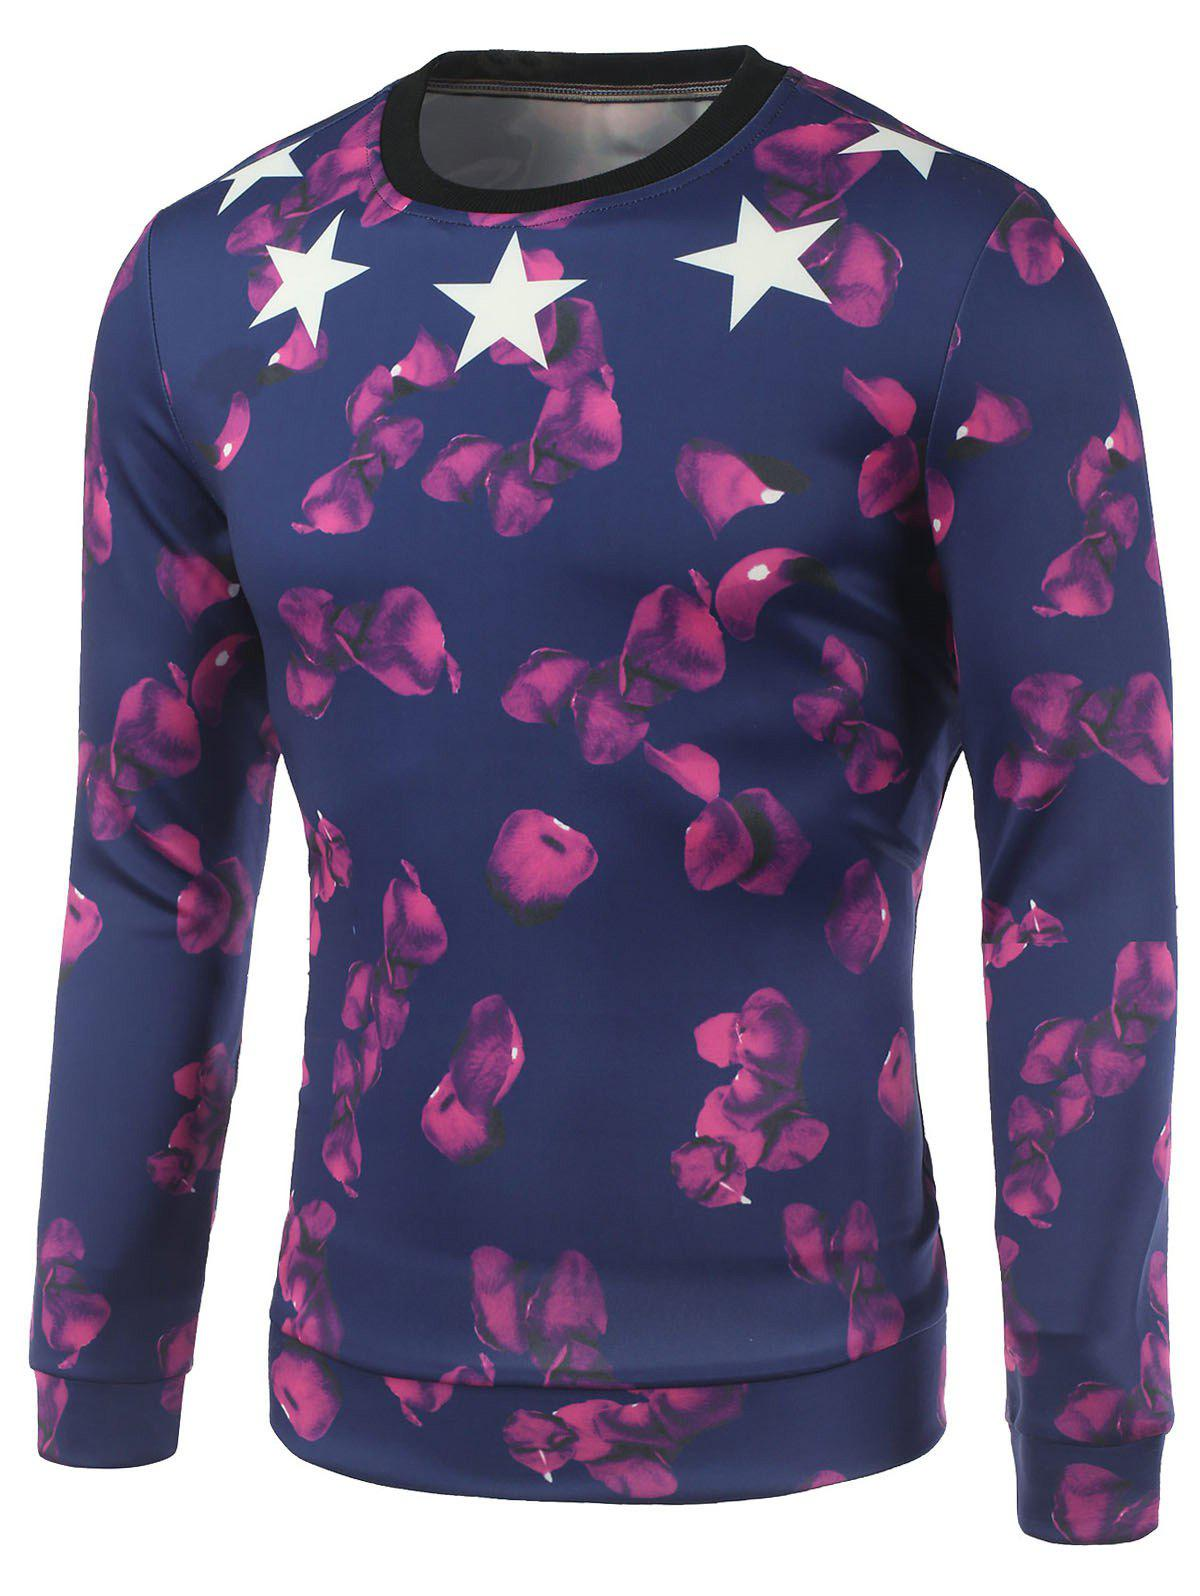 Crew Neck Petal and Star Printed Sweatshirt - DEEP BLUE M